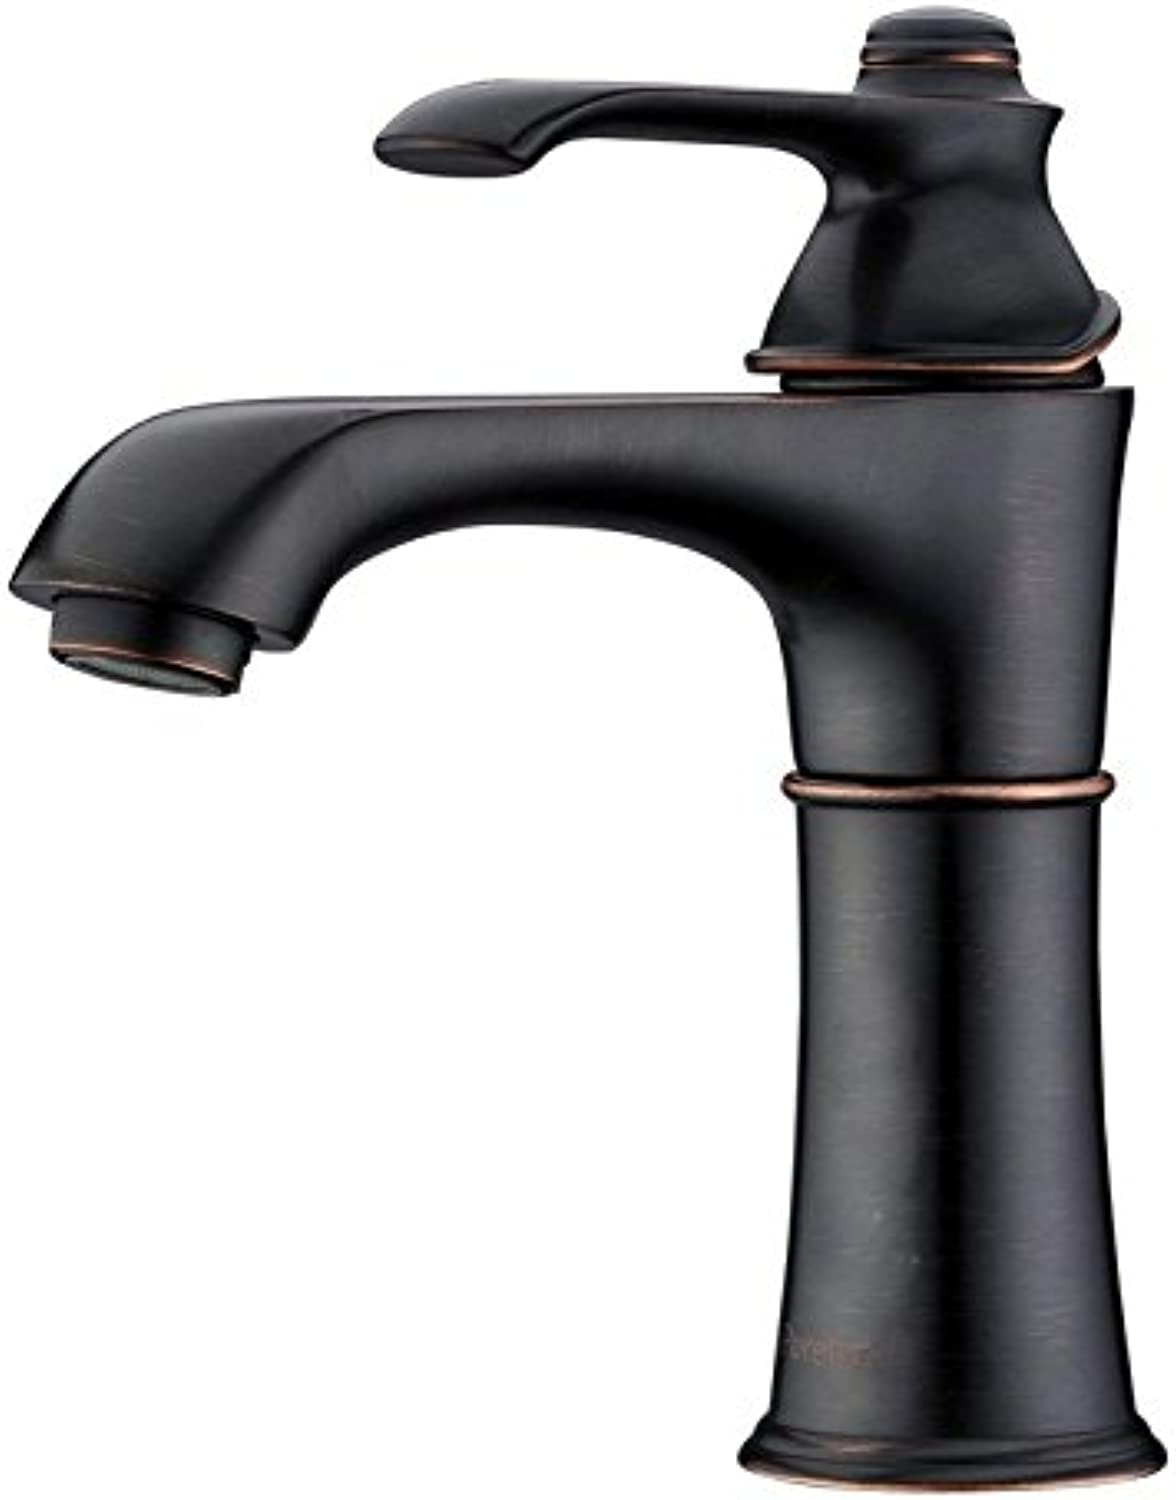 Classic Deck Mount Bathroom Vessel Sink Faucet Single Lever Control Tall Spout Mixer Tap, Oil Rubbed Bronze Finish 10 Year Warranty,A